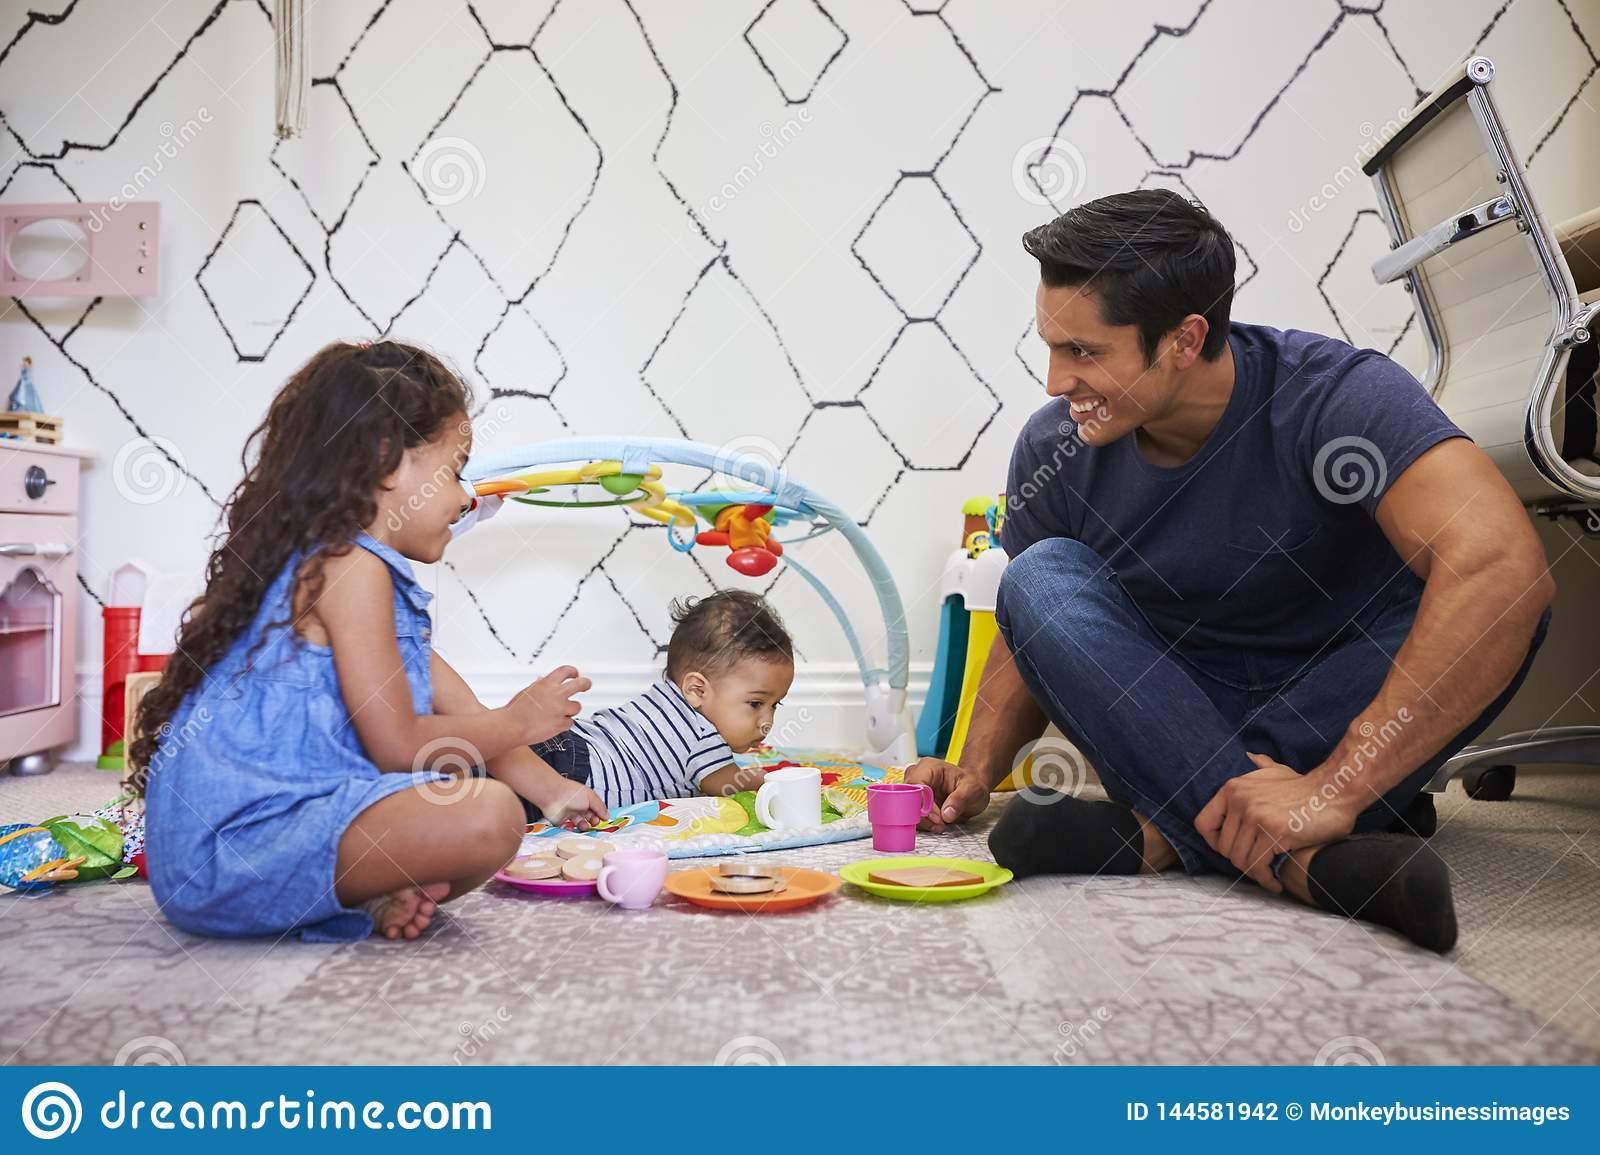 Young girl playing tea party with dad, sitting on the floor, baby brother on a play mat beside them